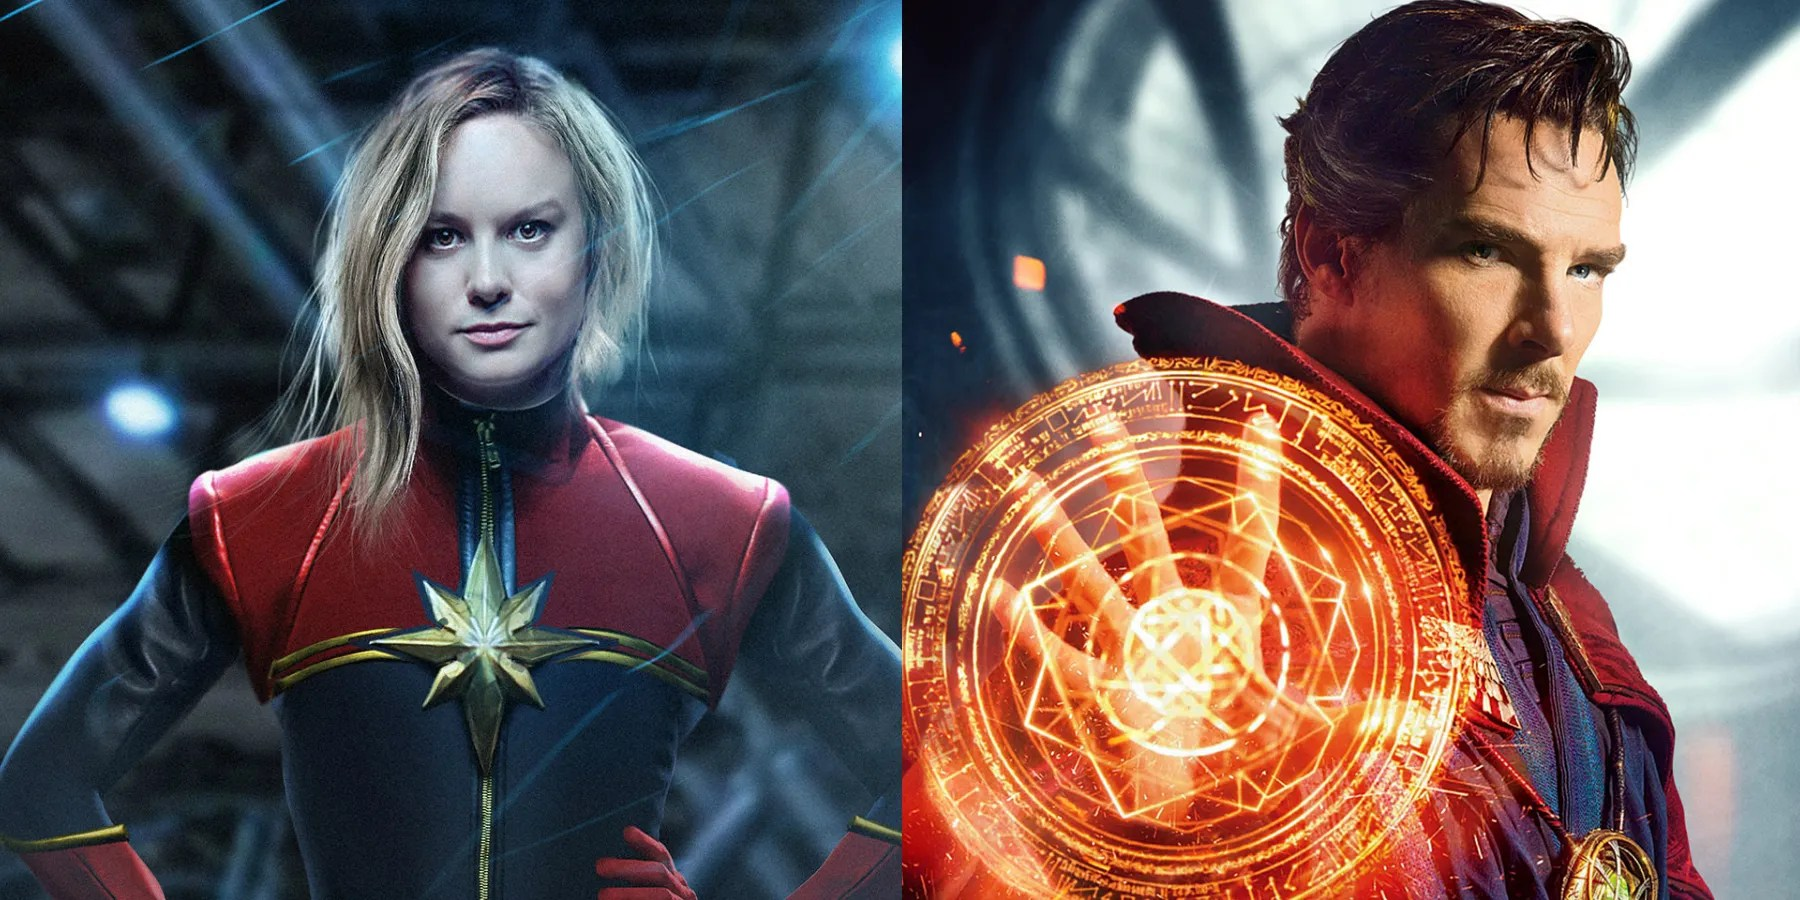 Avengers Assemble Wallpaper Hd Doctor Strange May Feature A Captain Marvel Easter Egg